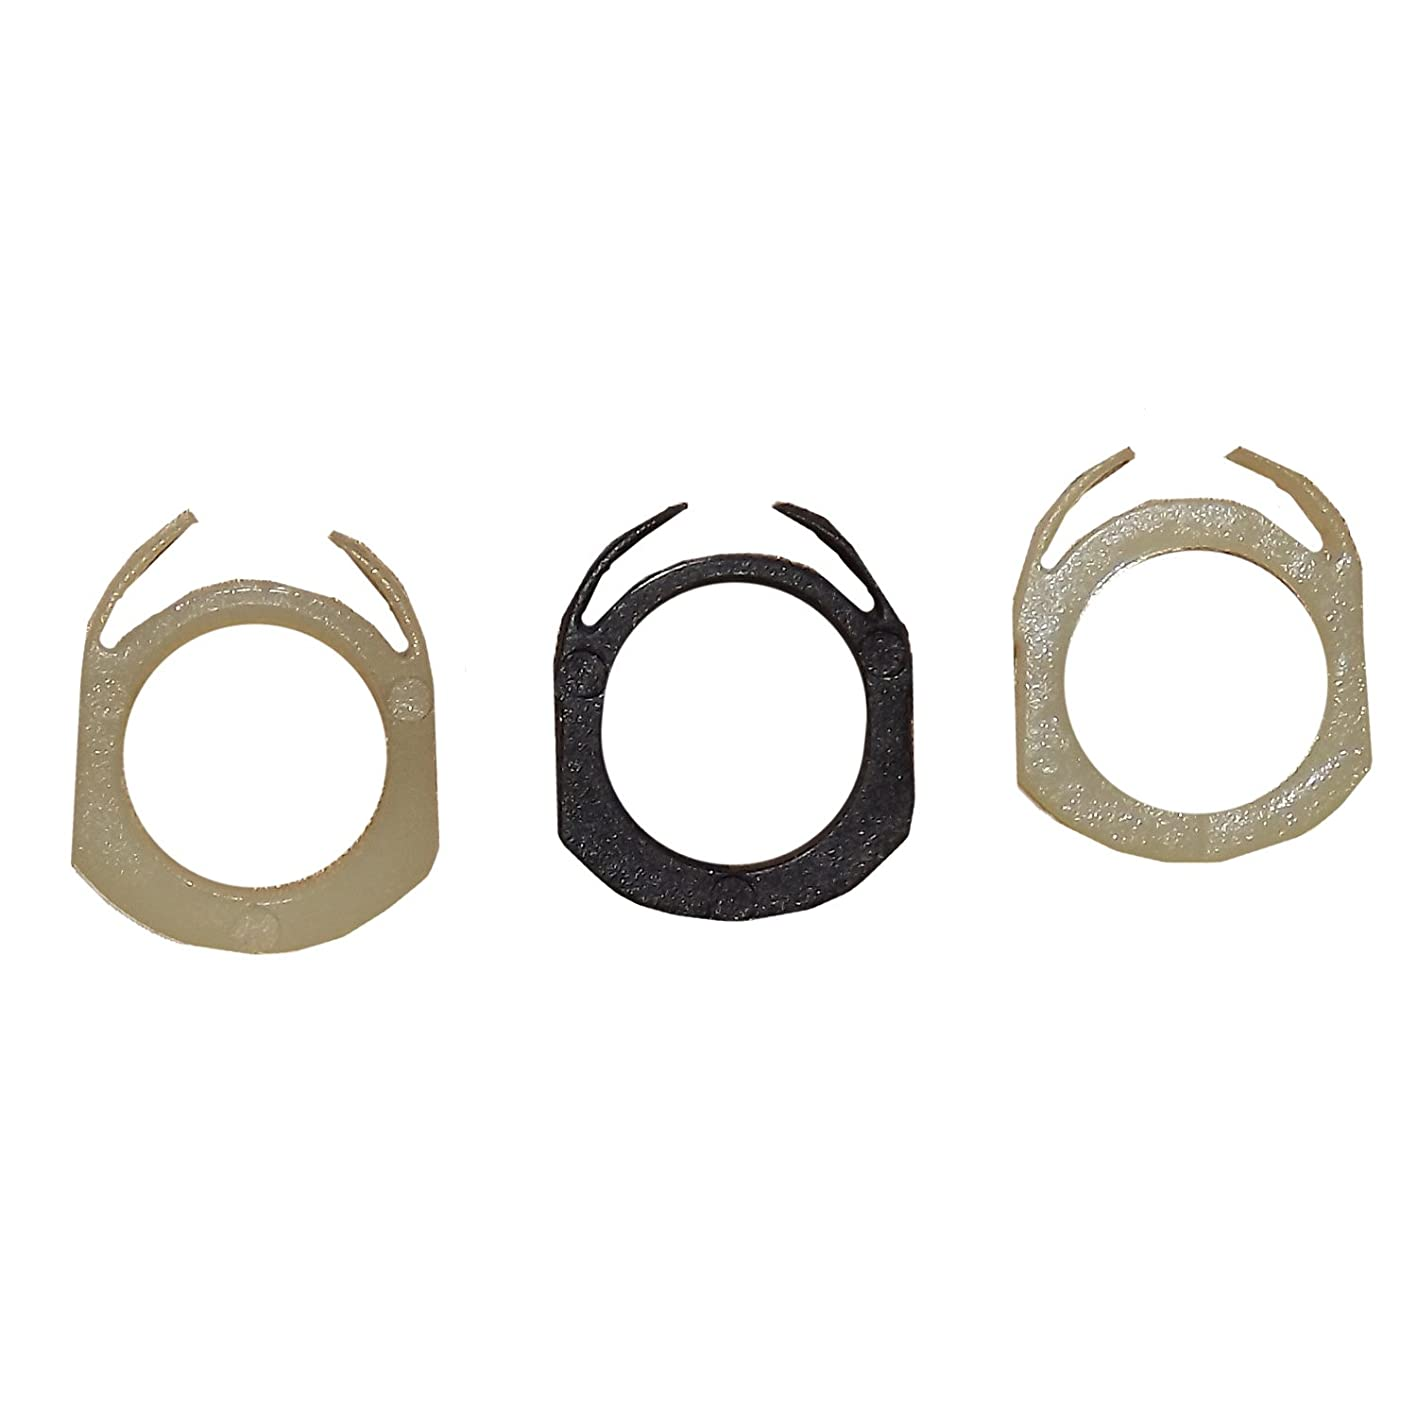 Needa Parts 800-021 Fuel Line Clip jtjibsguigh462